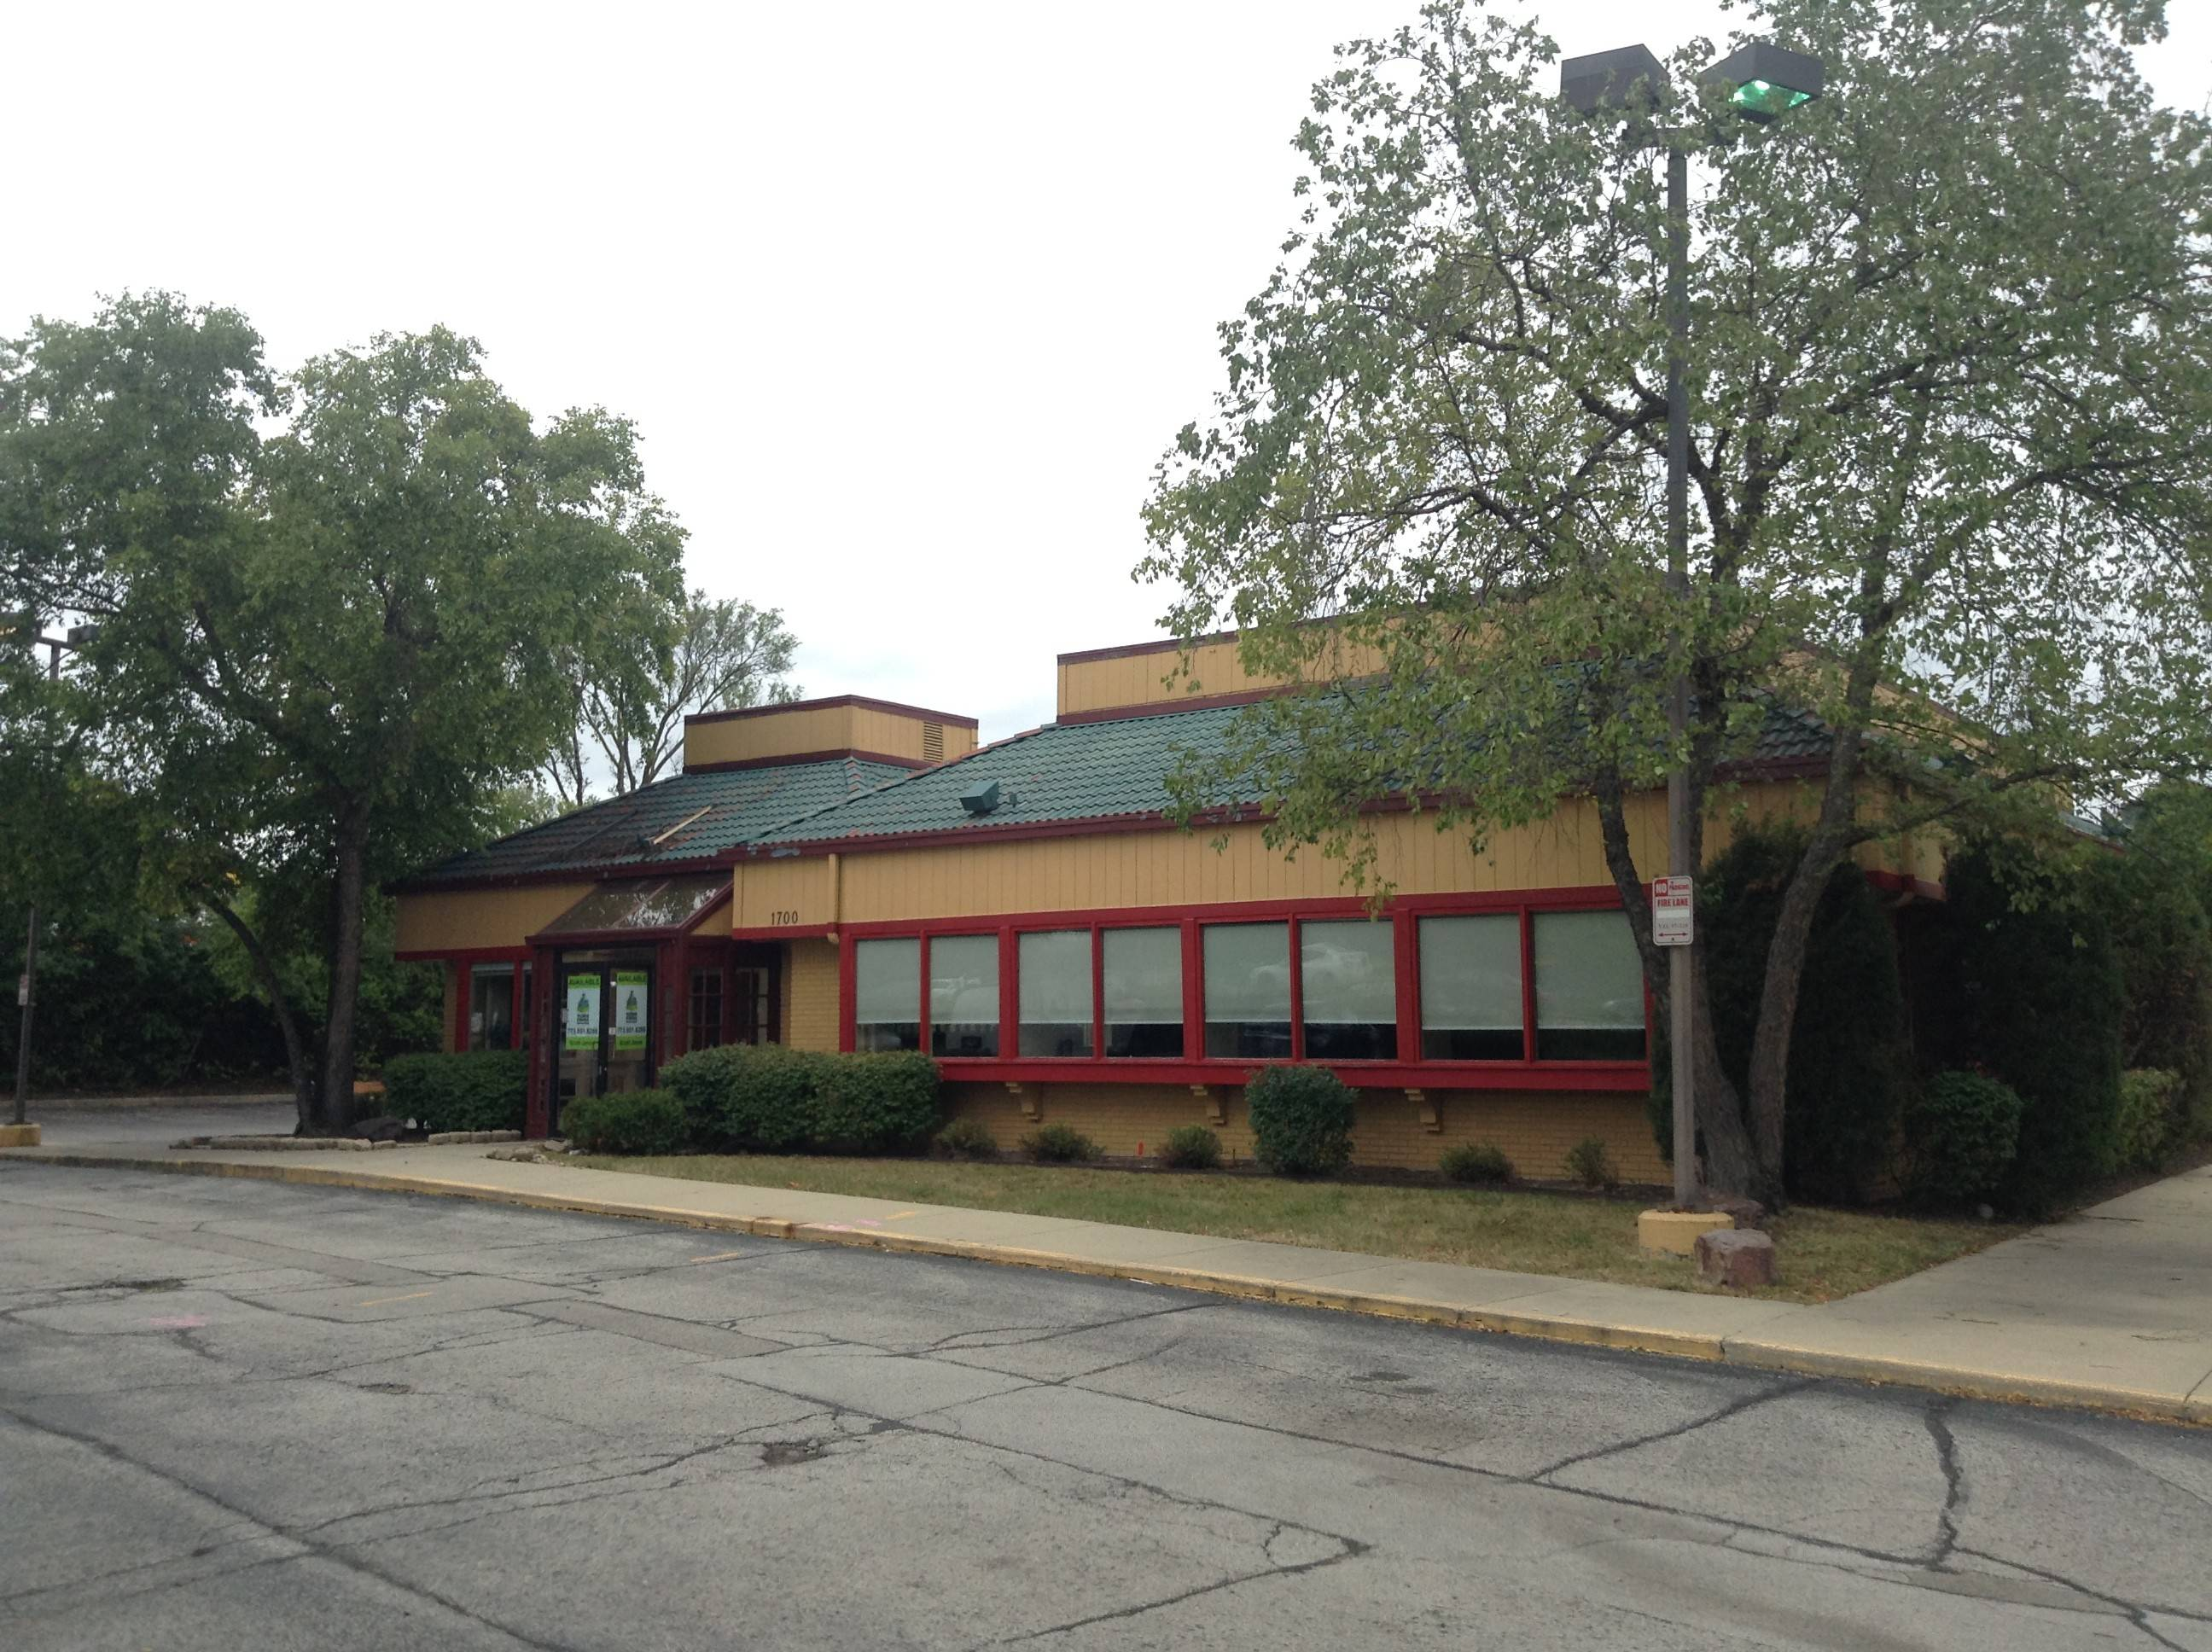 The former Denny's at 1700 E. Higgins Road in Schaumburg, just west of the Streets of Woodfield shopping center, is expected to reopen as an IHOP by the end of the year.